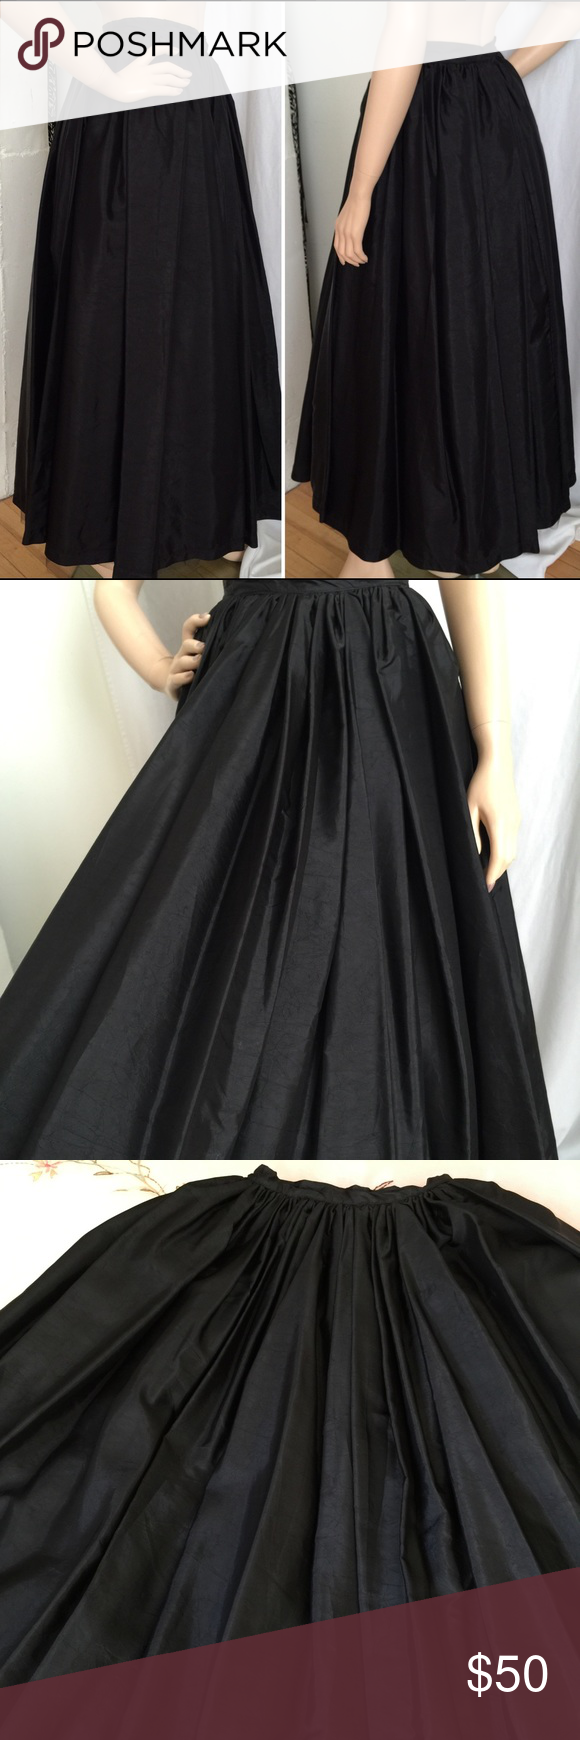 96a734517 Black Full Maxi Evening Skirt Classy black full circle skirt. Floor length,  fully lined with 2-layered tulle. Back zip closure. Fabric appears to be  silk.